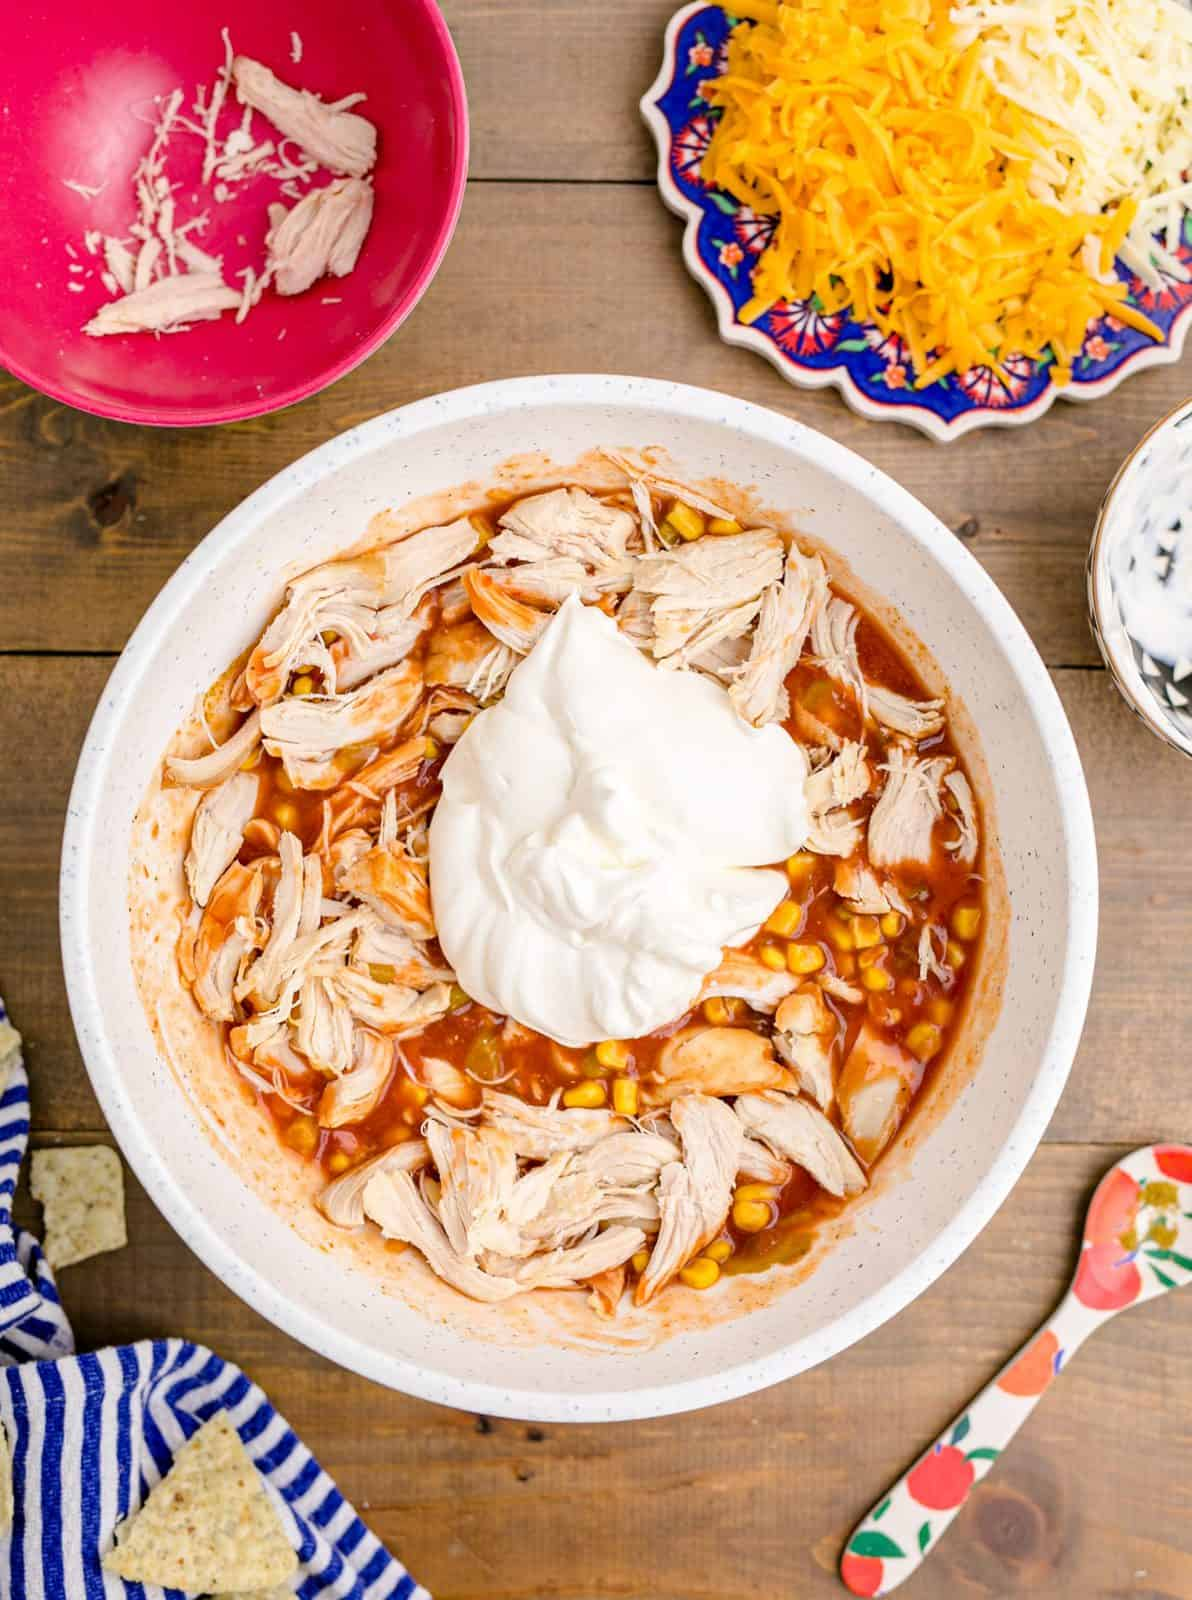 Sour cream and chicken added to mixture in white bowl.